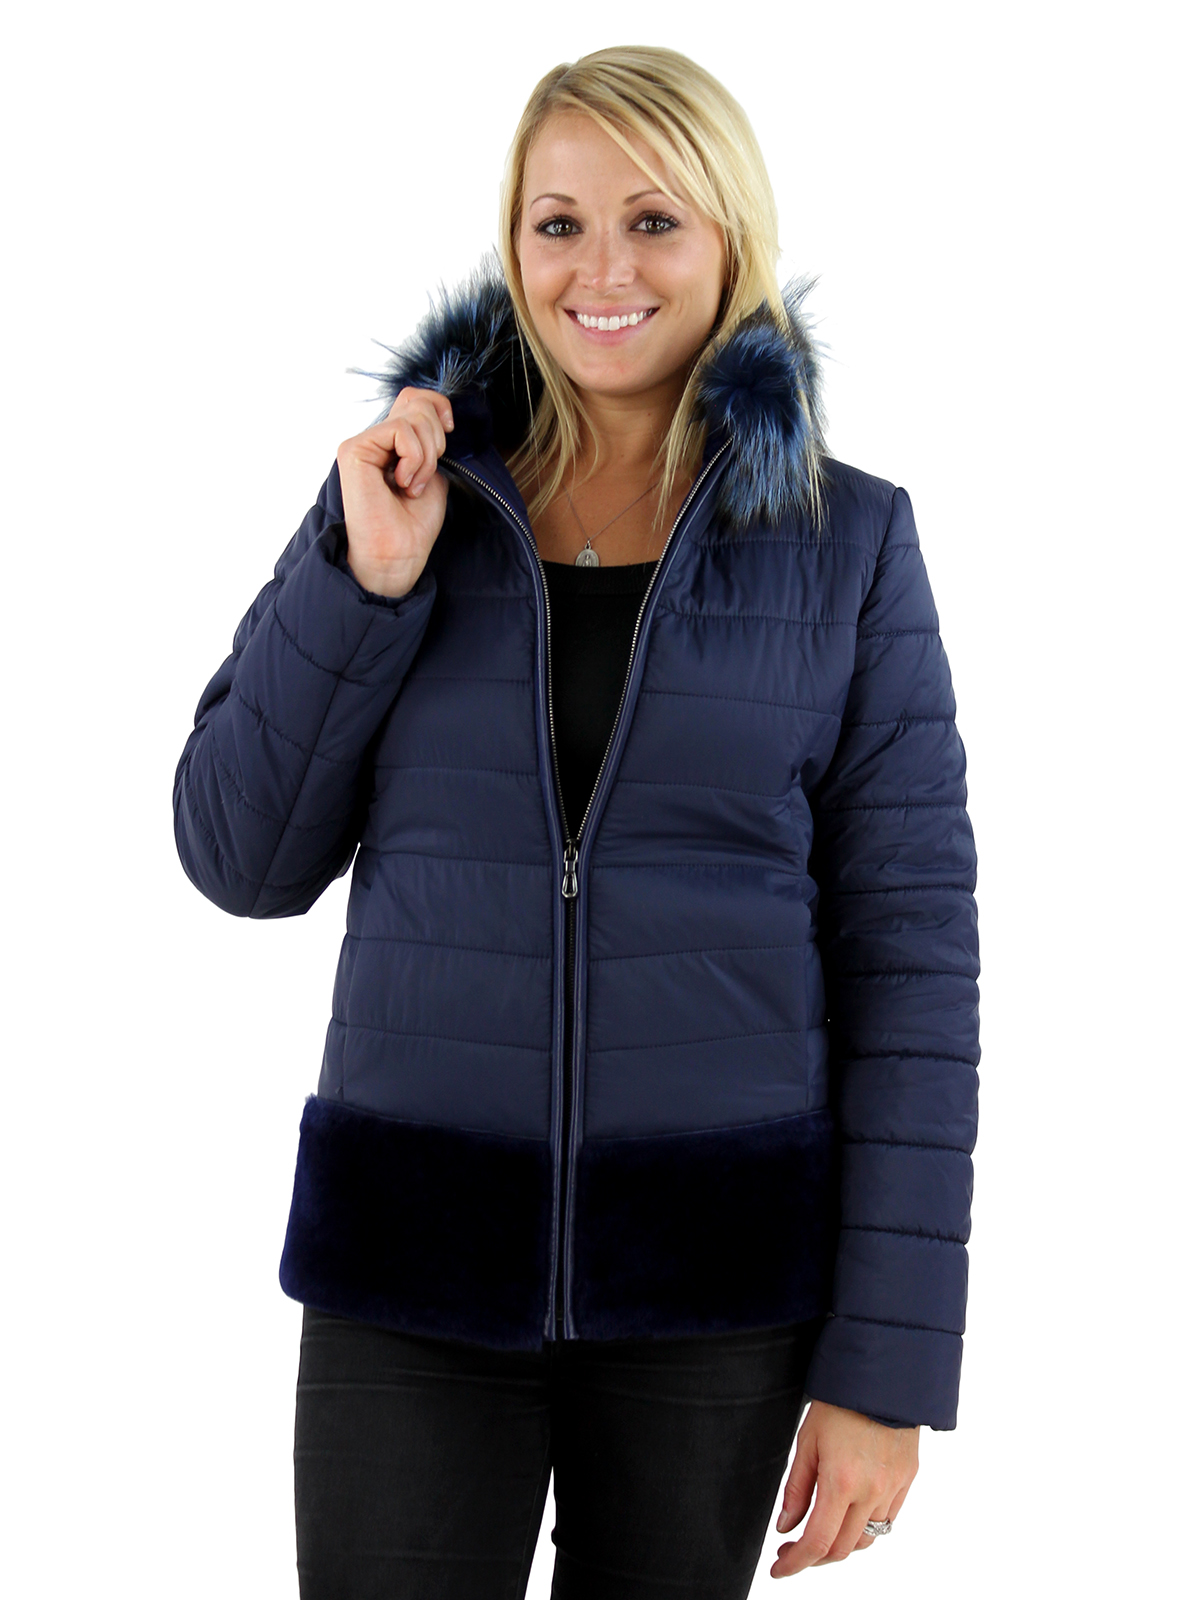 Woman's Navy Shearling and Fabric Jacket